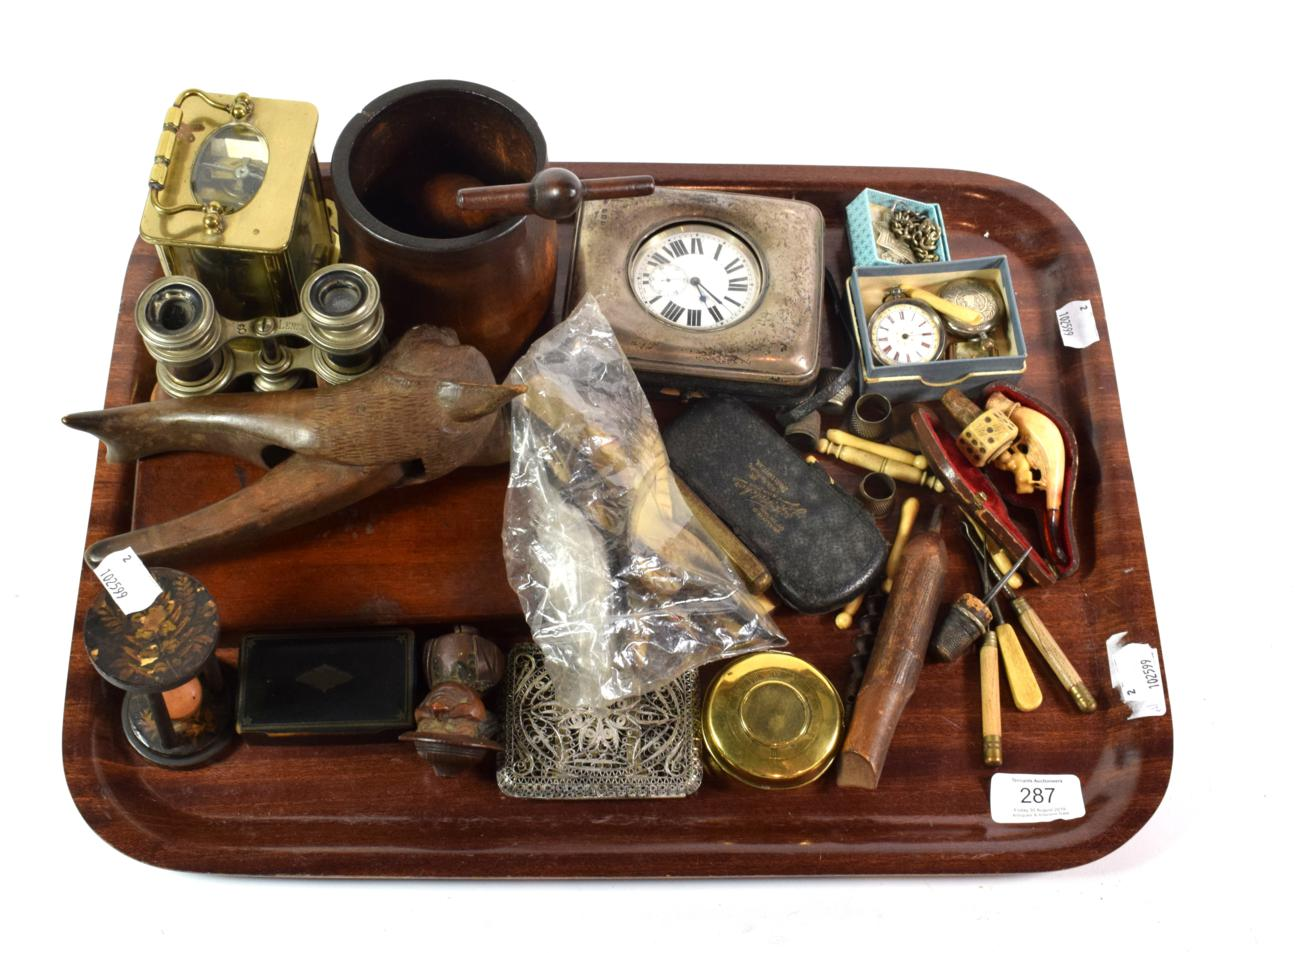 Lot 287 - Assorted collectables including carriage clock, silver case for pocket watch, nut crackers, opera